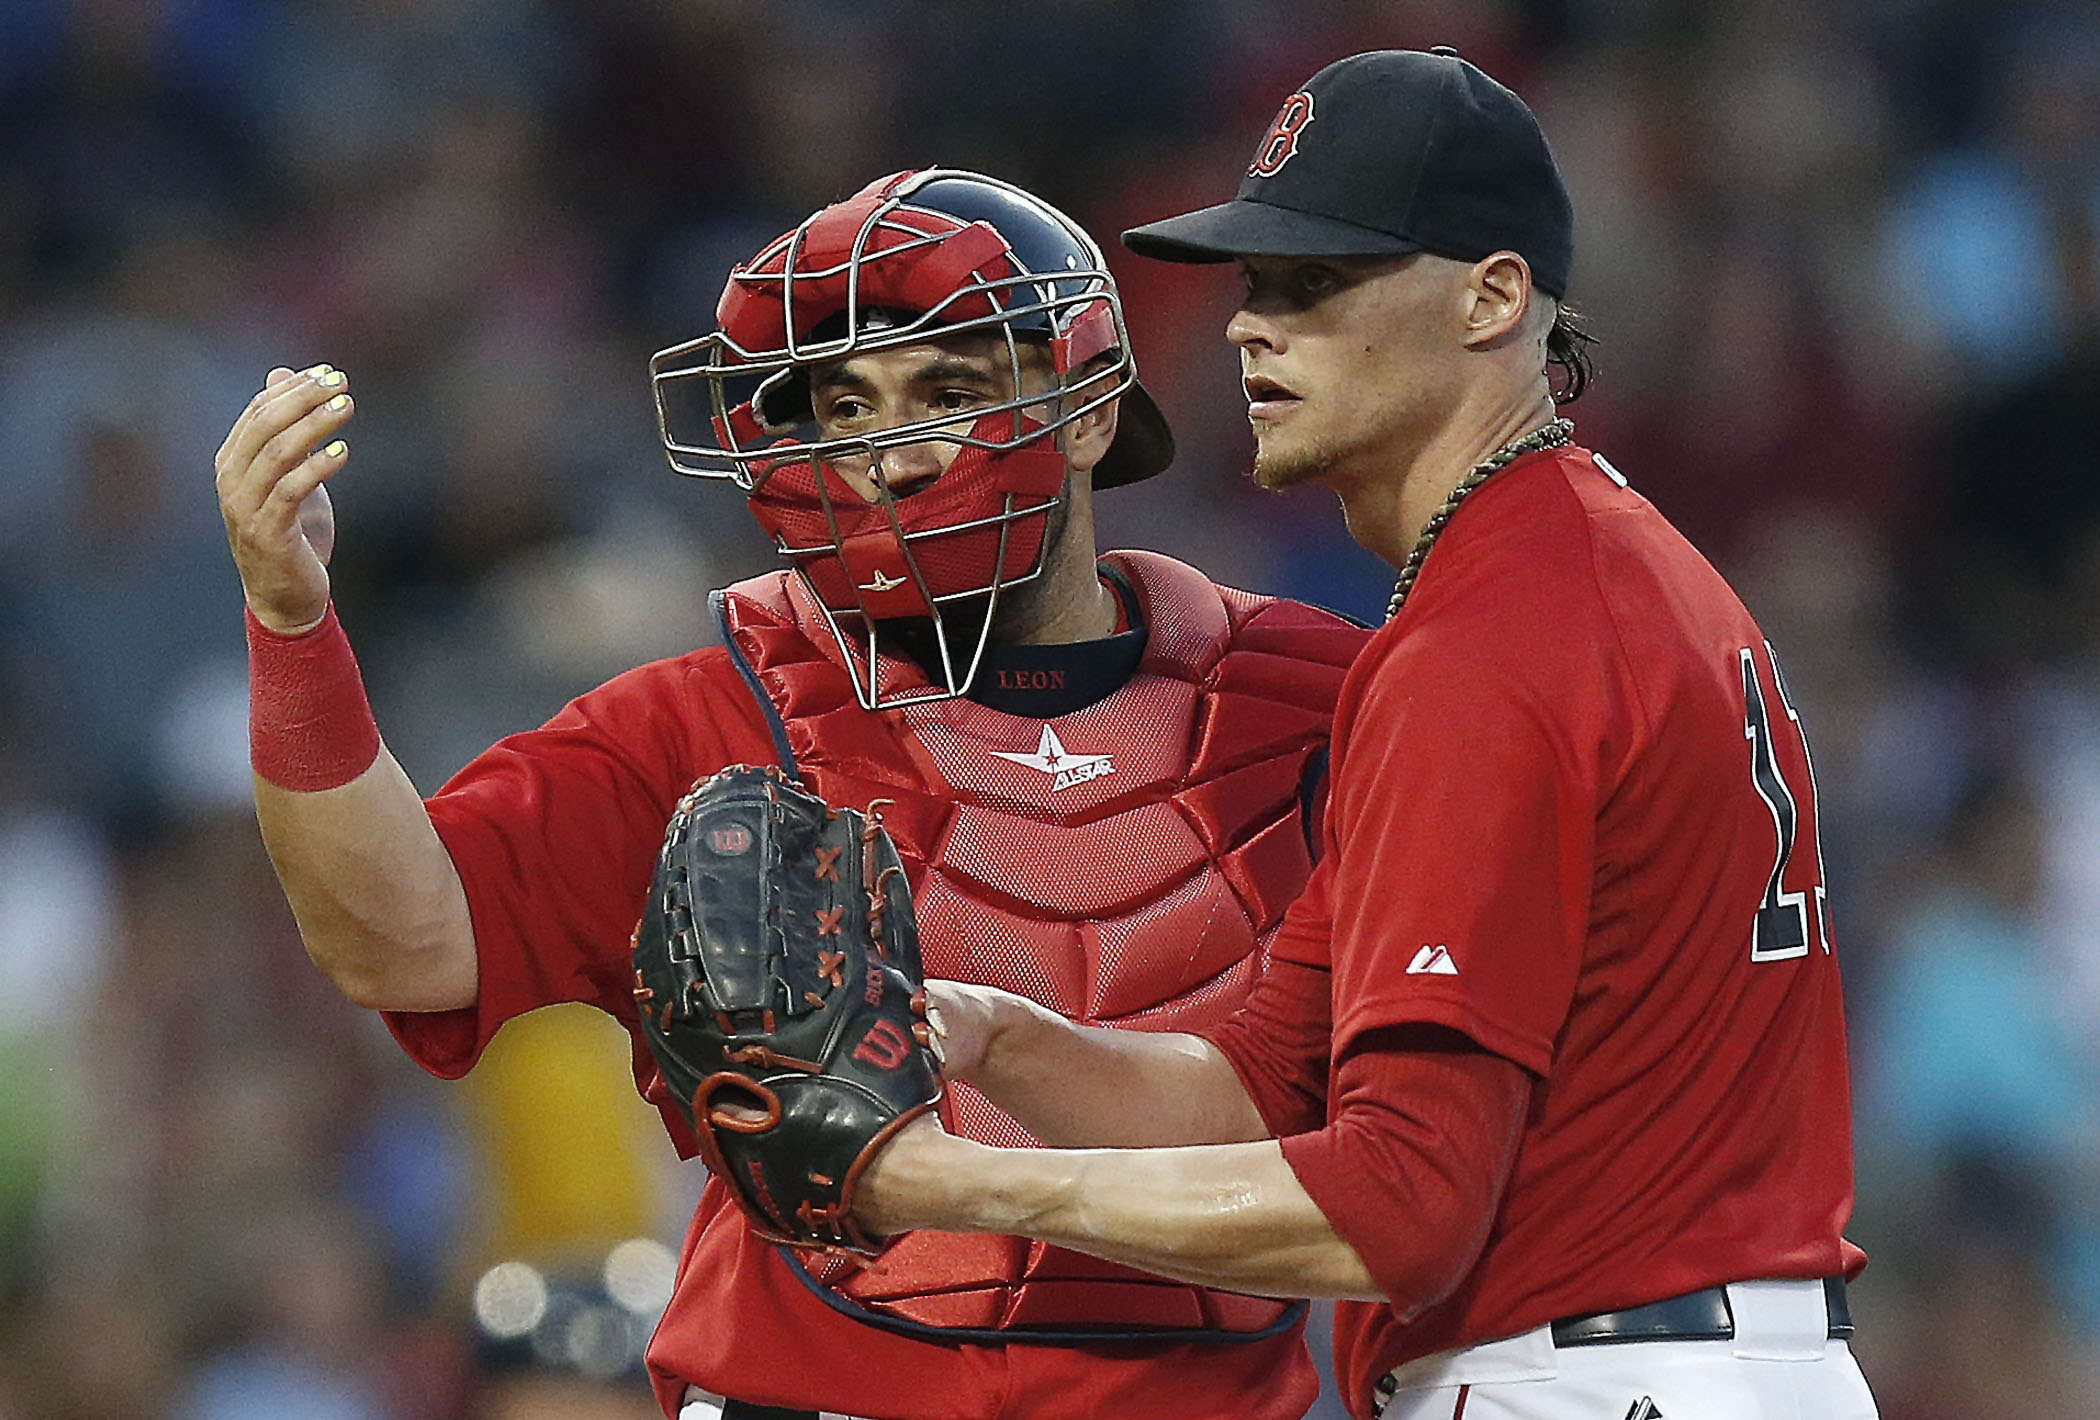 Boston Red Sox's Sandy Leon, left, signals to the dugout beside Clay Buchholz during the fourth inning of a baseball game against the New York Yankees in Boston, Friday, July 10, 2015. Manager John Farrell came to the mound and Buchholz left the game. (AP